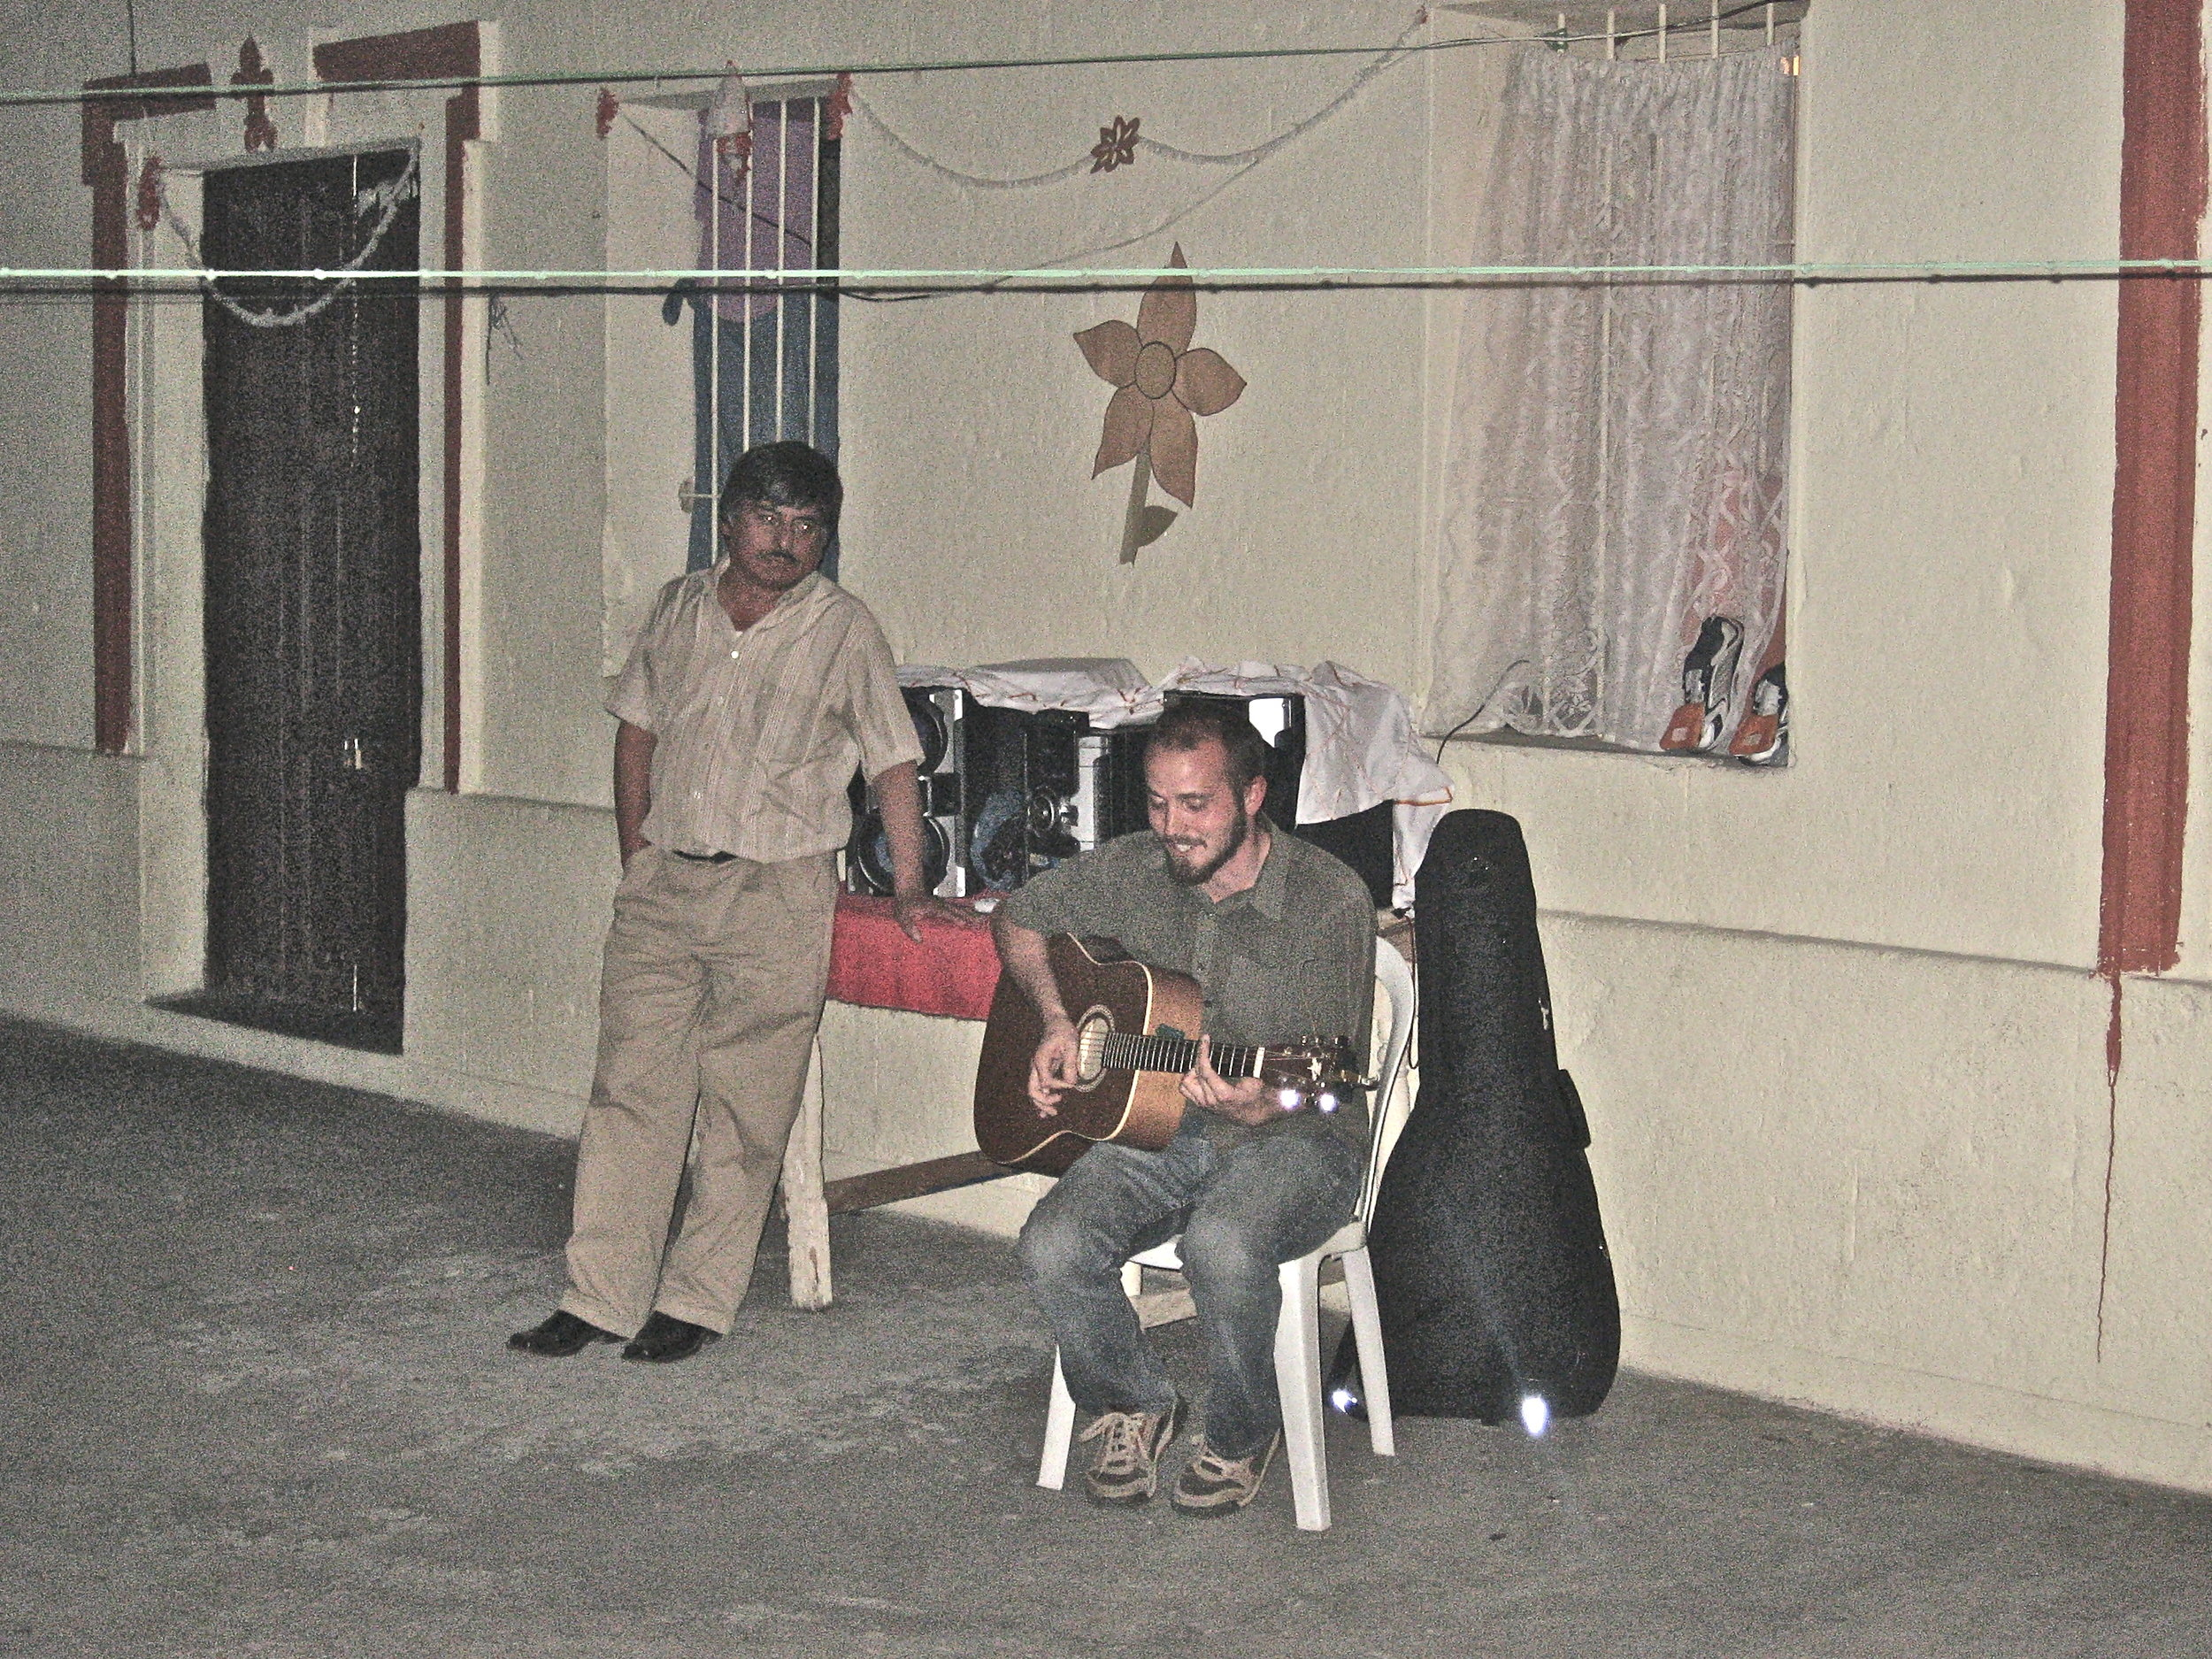 On Christmas Eve, a few hours after I originally sent this email, I went with a few classmates and the director of the school to a Woman's prison in Xela, to spread mirth and positivity. We sang some songs and danced and it was an amazing evening, so much fun was had. The director, pictured here, had me bring my guitar to every event; at the prison, I played a duet with one of the women, who sang the old pub favourite, What's Up, by 4 Non Blondes. What a world.